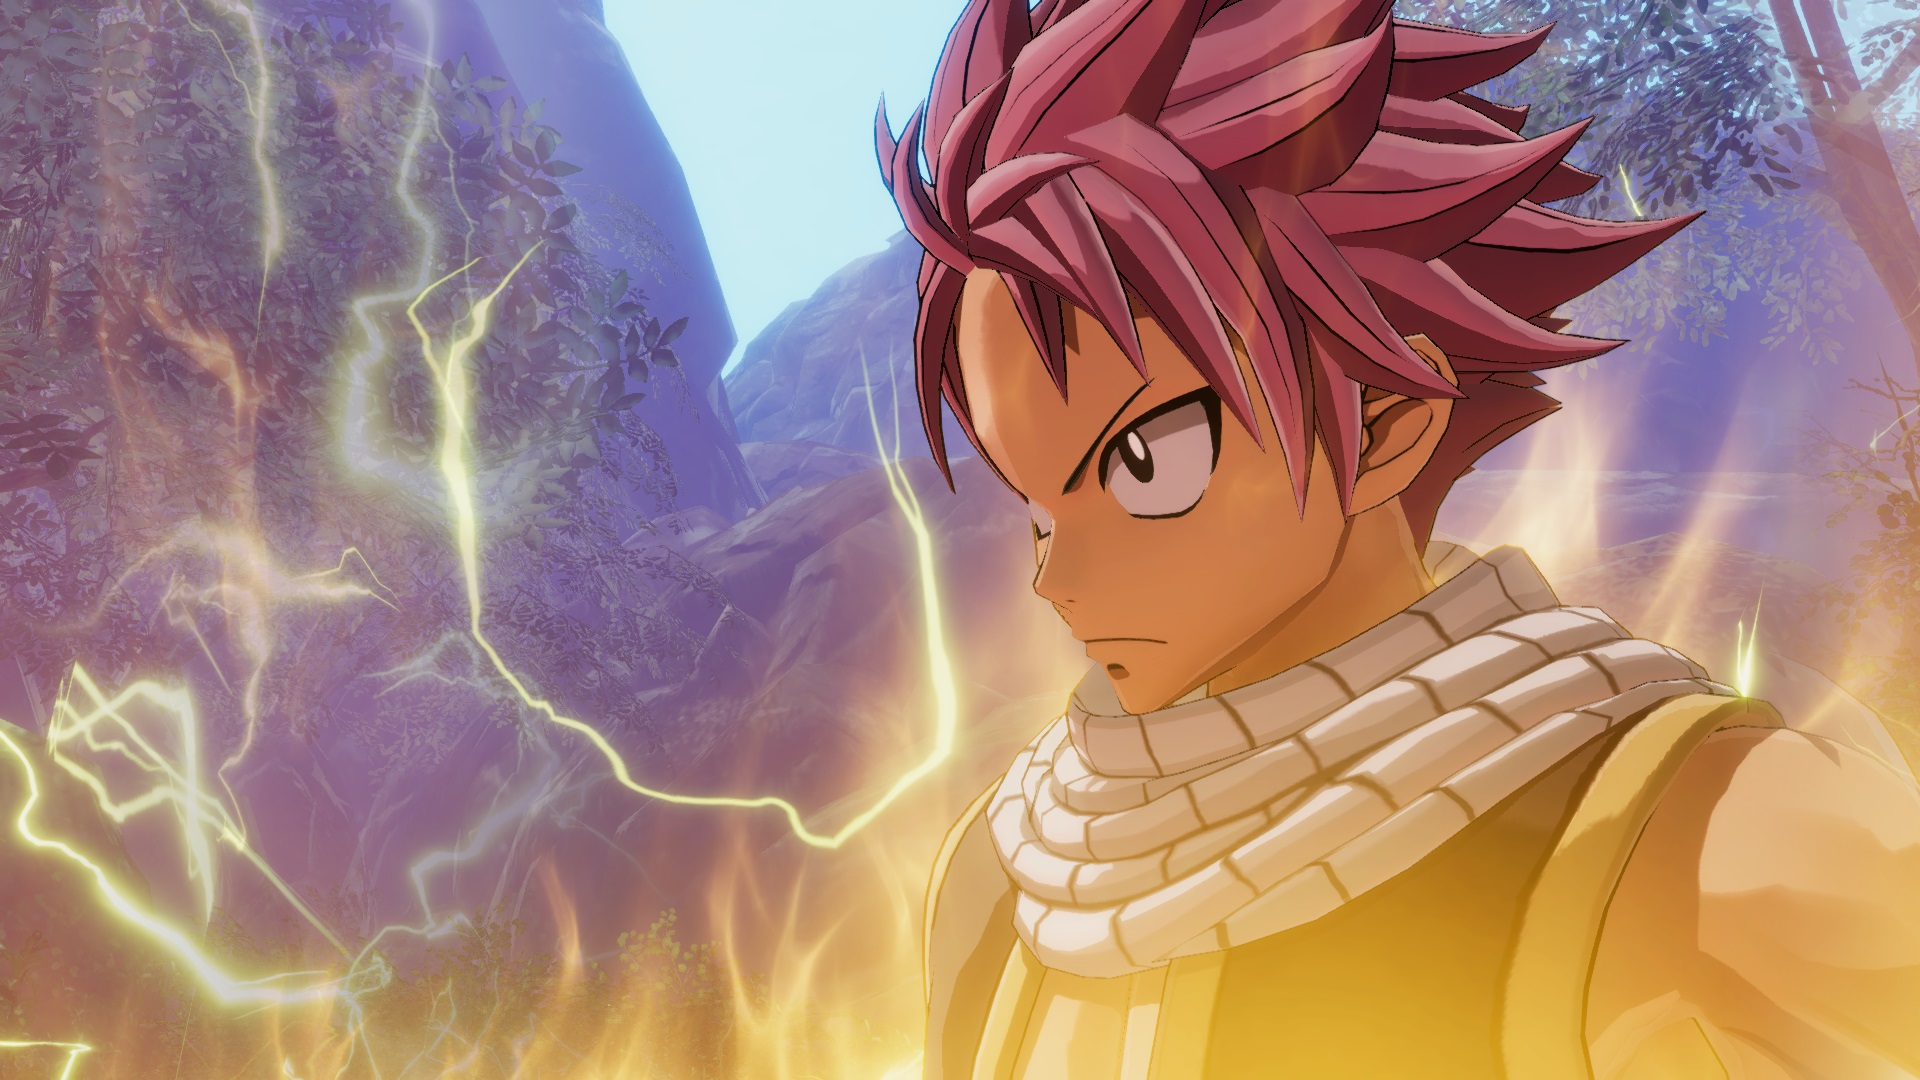 New Fairy Tail battle animations footage